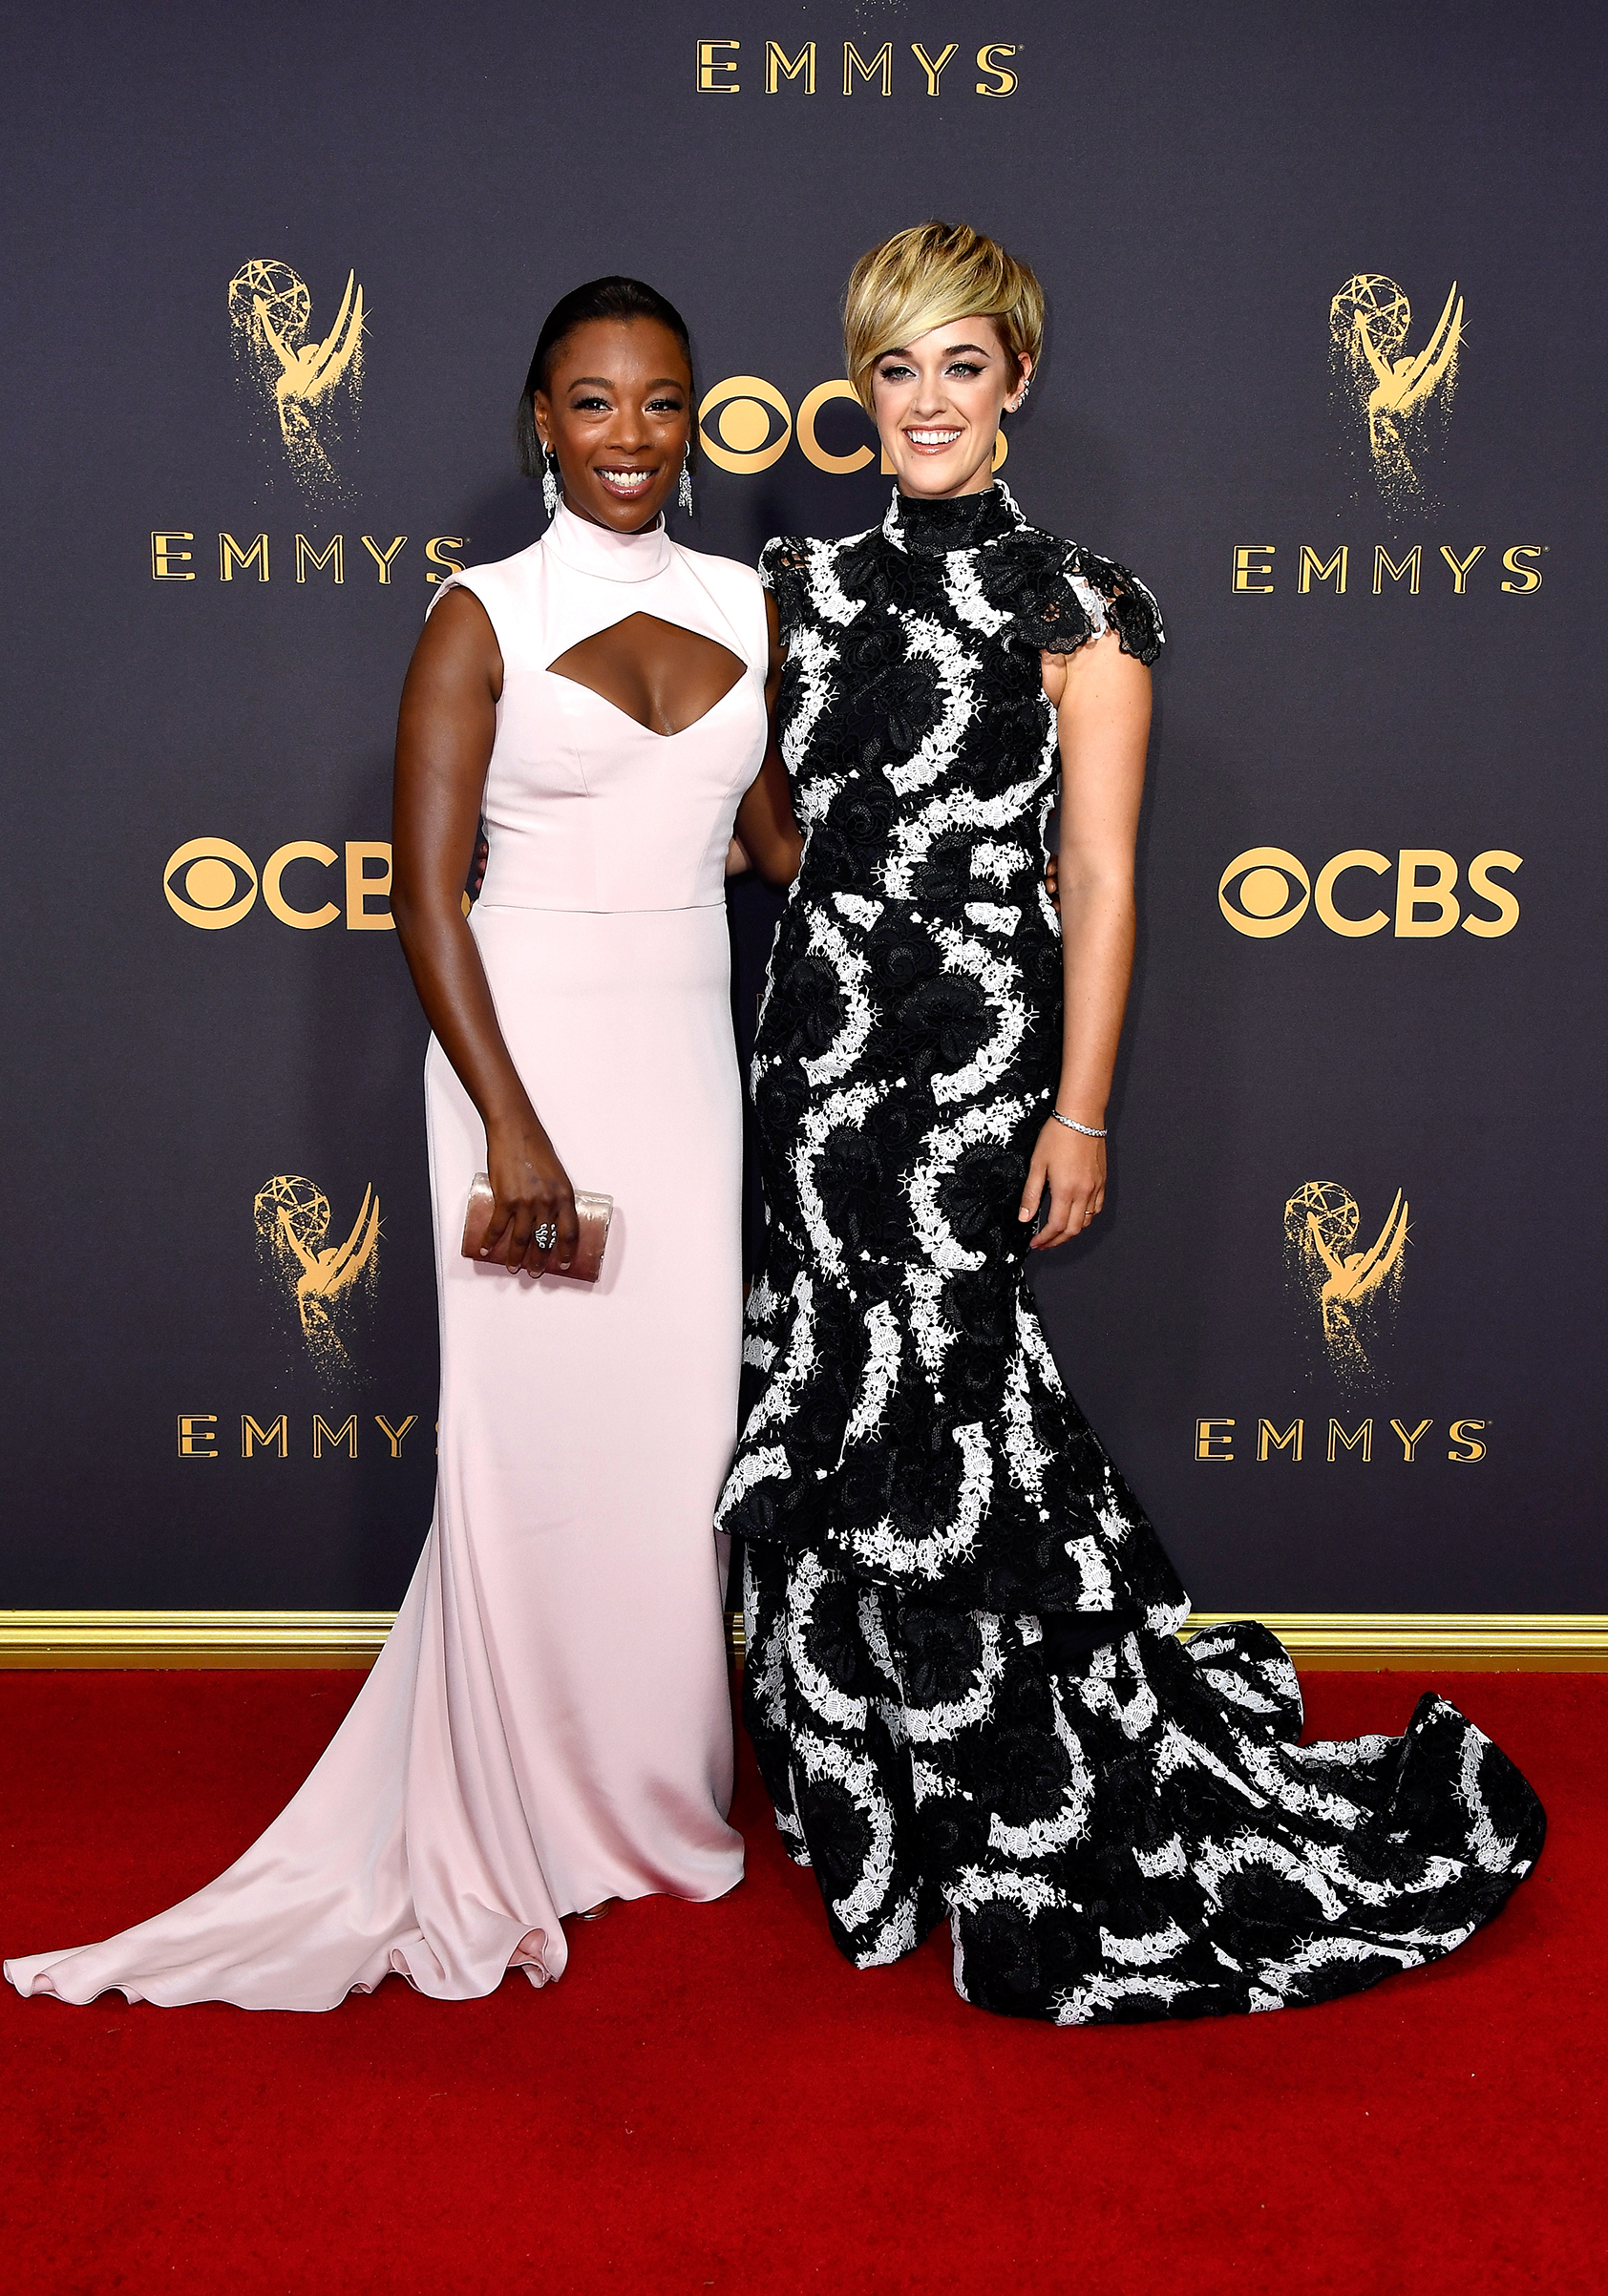 Actor Samira Wiley and Lauren Morelli attend the 69th Annual Primetime Emmy Awards at Microsoft Theater on September 17, 2017 in Los Angeles, California.